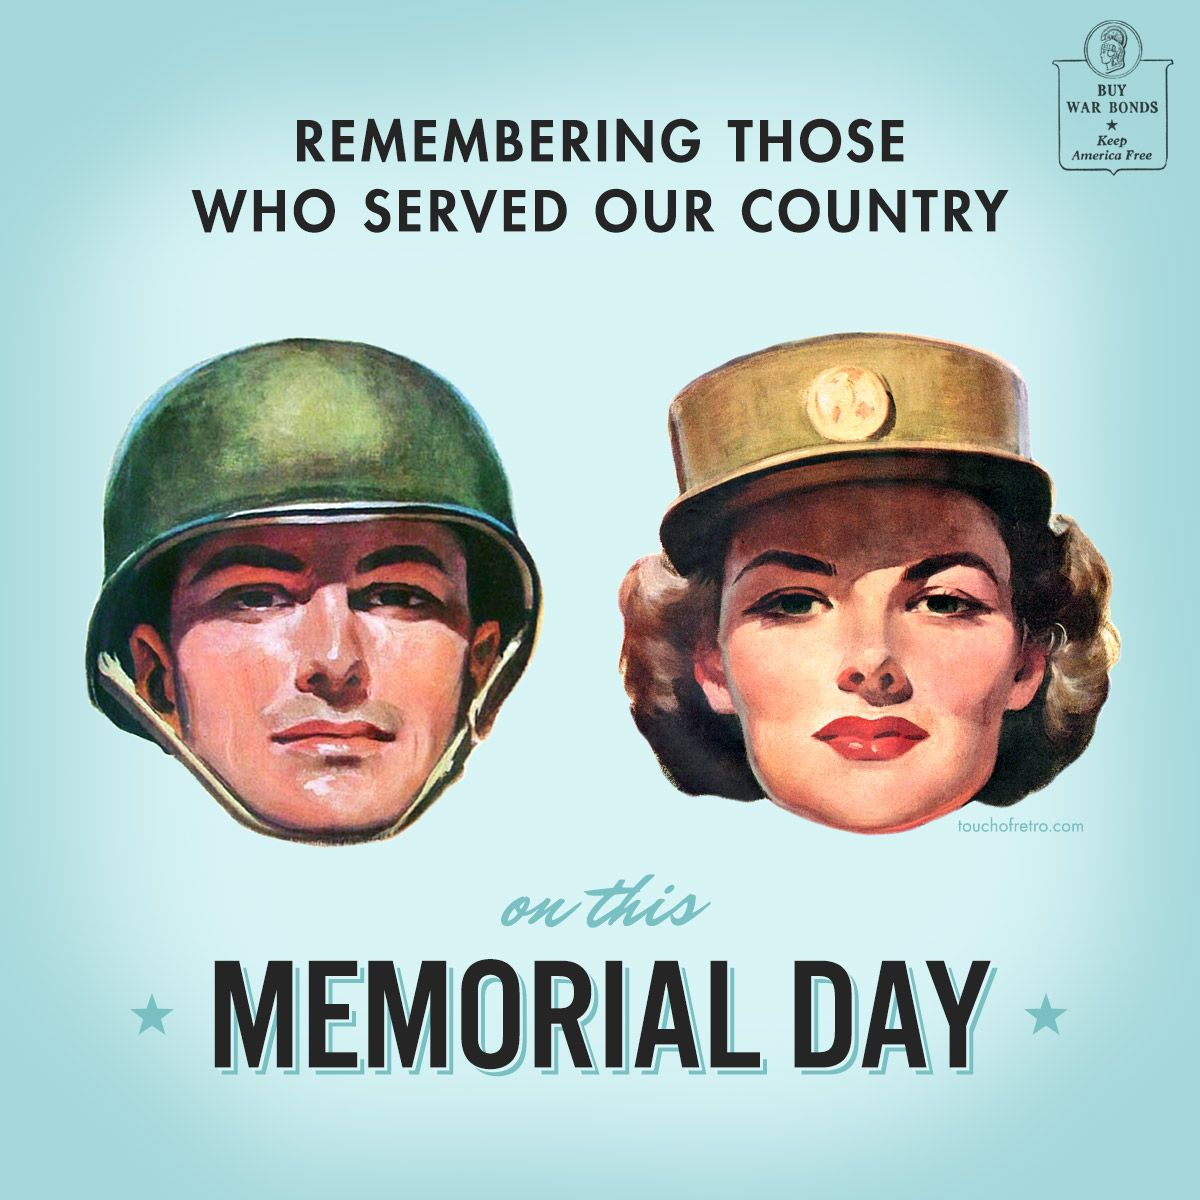 1950s memorial day images | ... our country on this Memorial Day.(Illustrations by Bradshaw Crandell